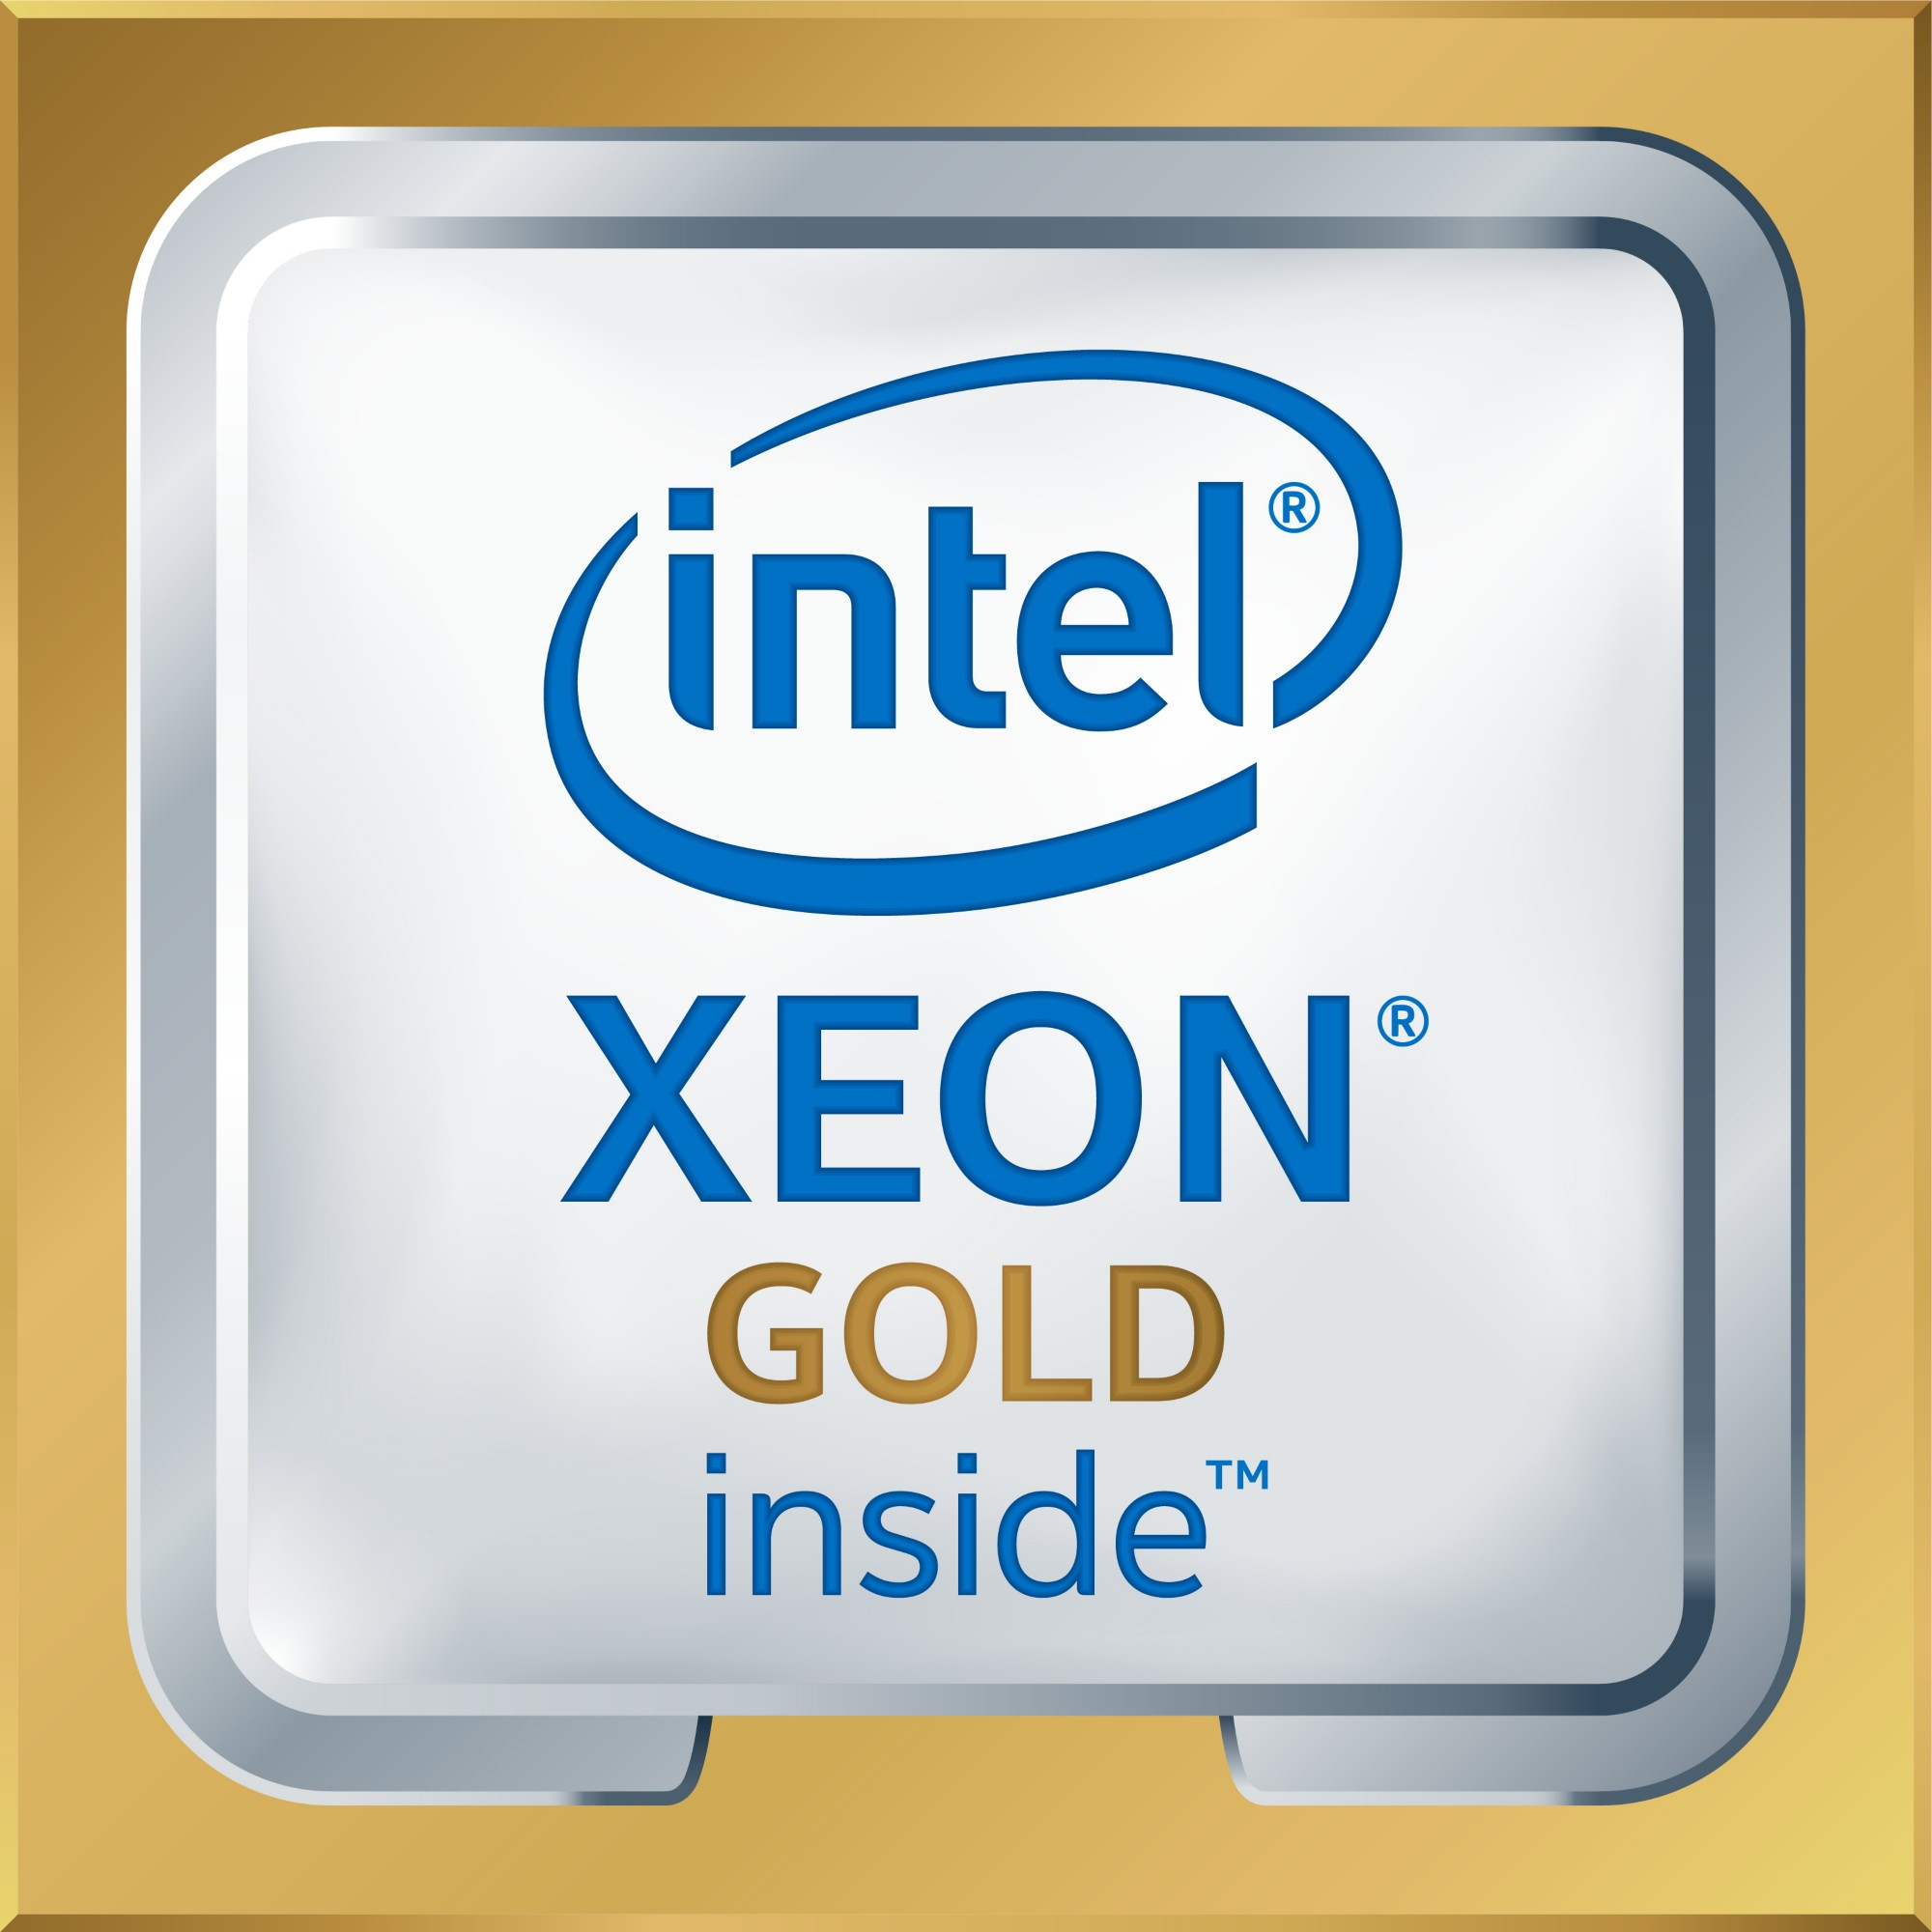 LENOVO 7XG7A05605 INTEL XEON GOLD 6134 3.2GHZ 24.75MB L3 PROCESSOR